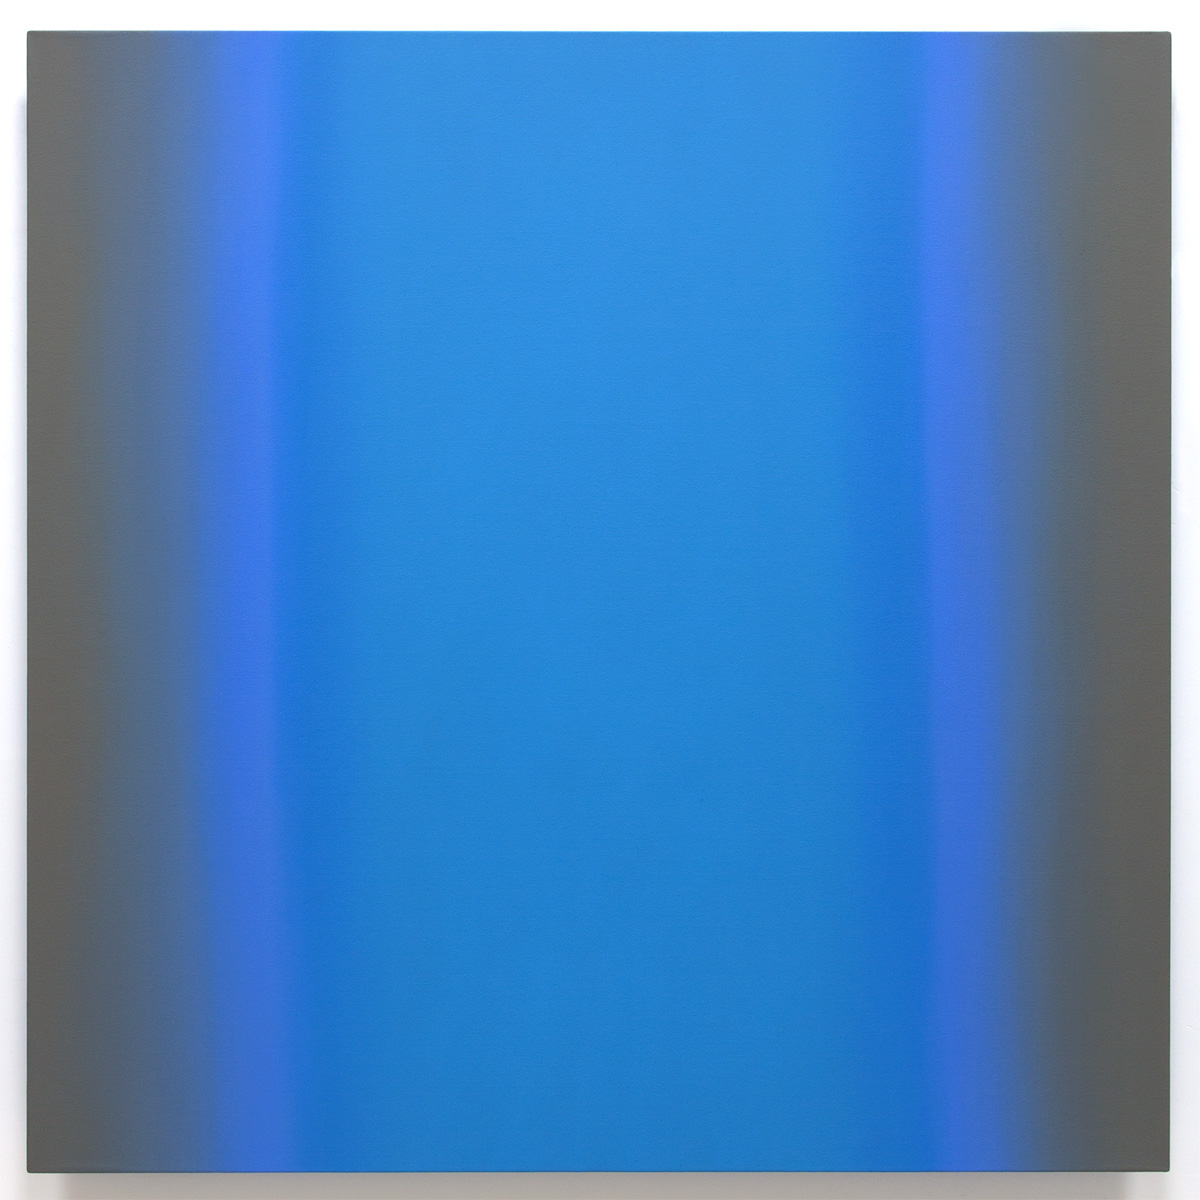 Blue Orange 4-S6060 (Violet Blue), Interplay Series, 2013, oil on canvas on custom beveled stretcher, 60 x 60 in. (153 x 153 cm.)